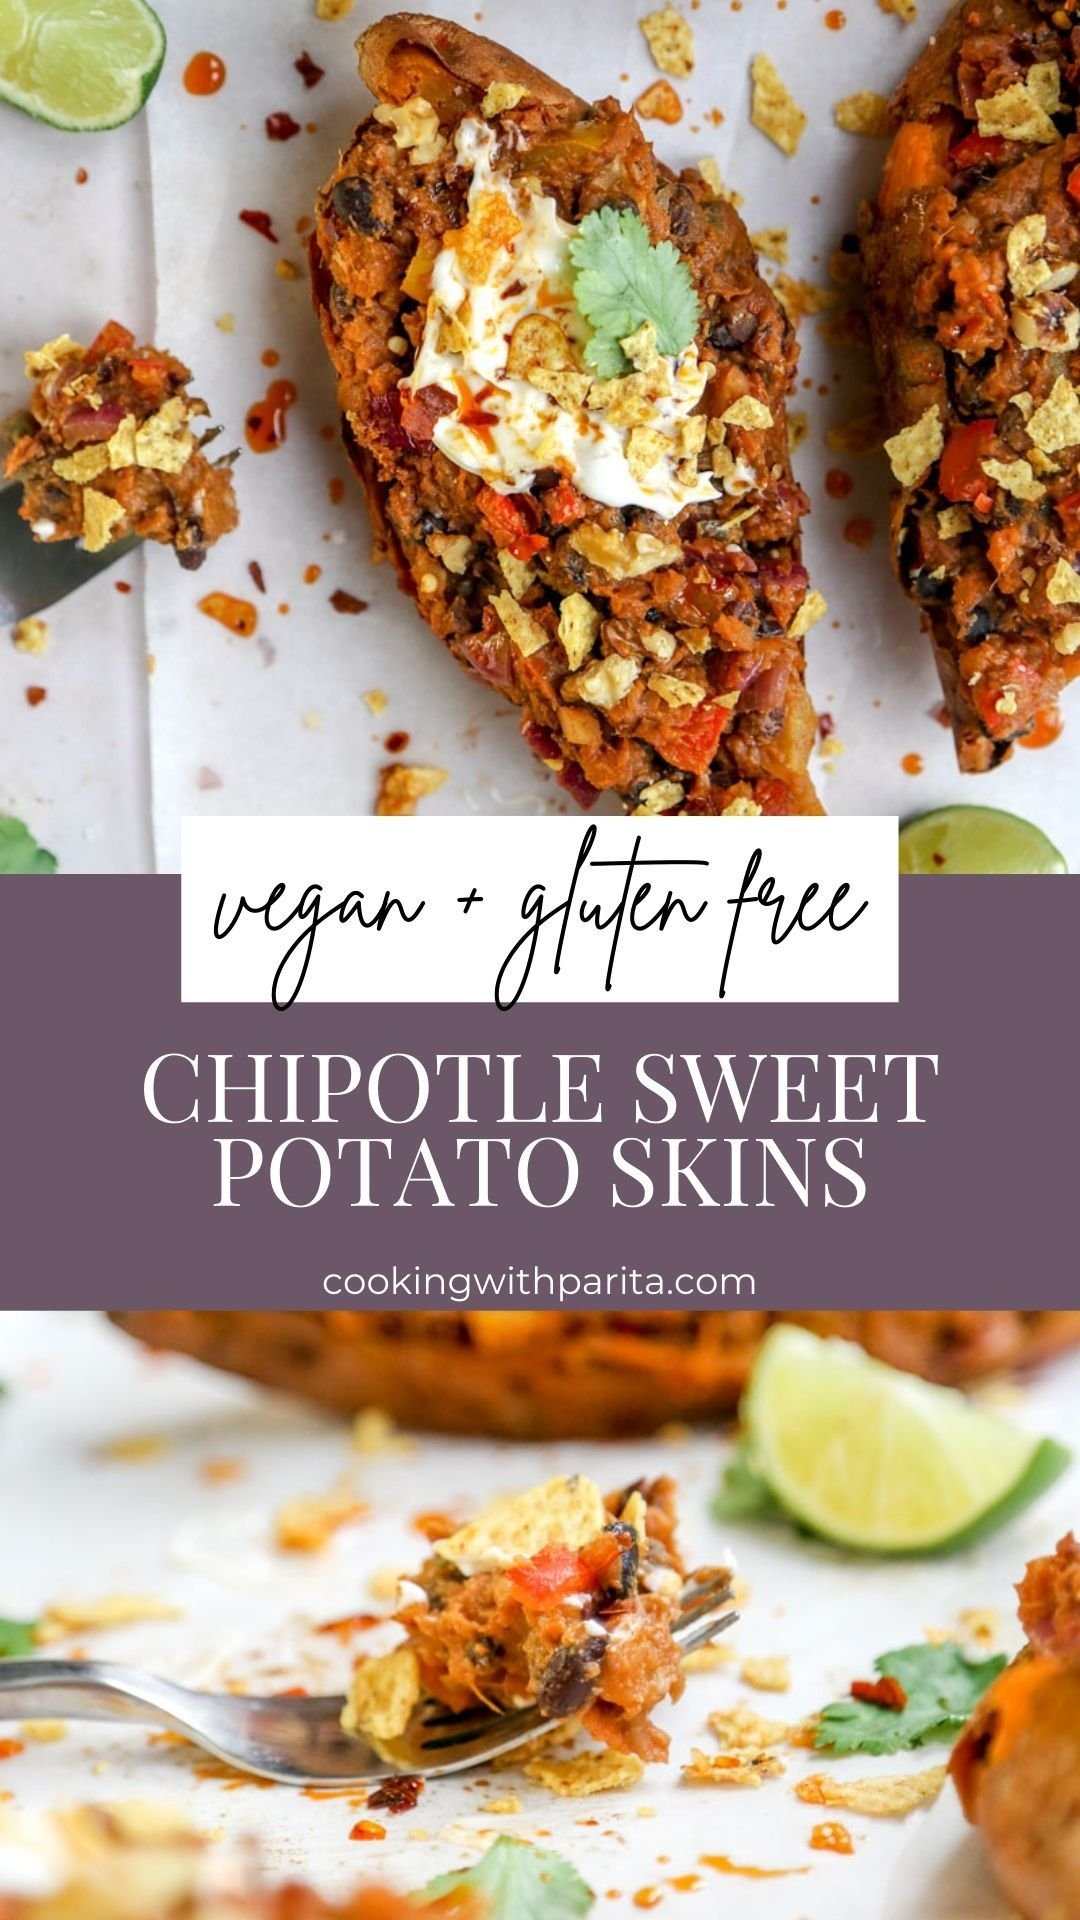 Healthy Chipotle Sweet Potato Skins - Vegan and Gl